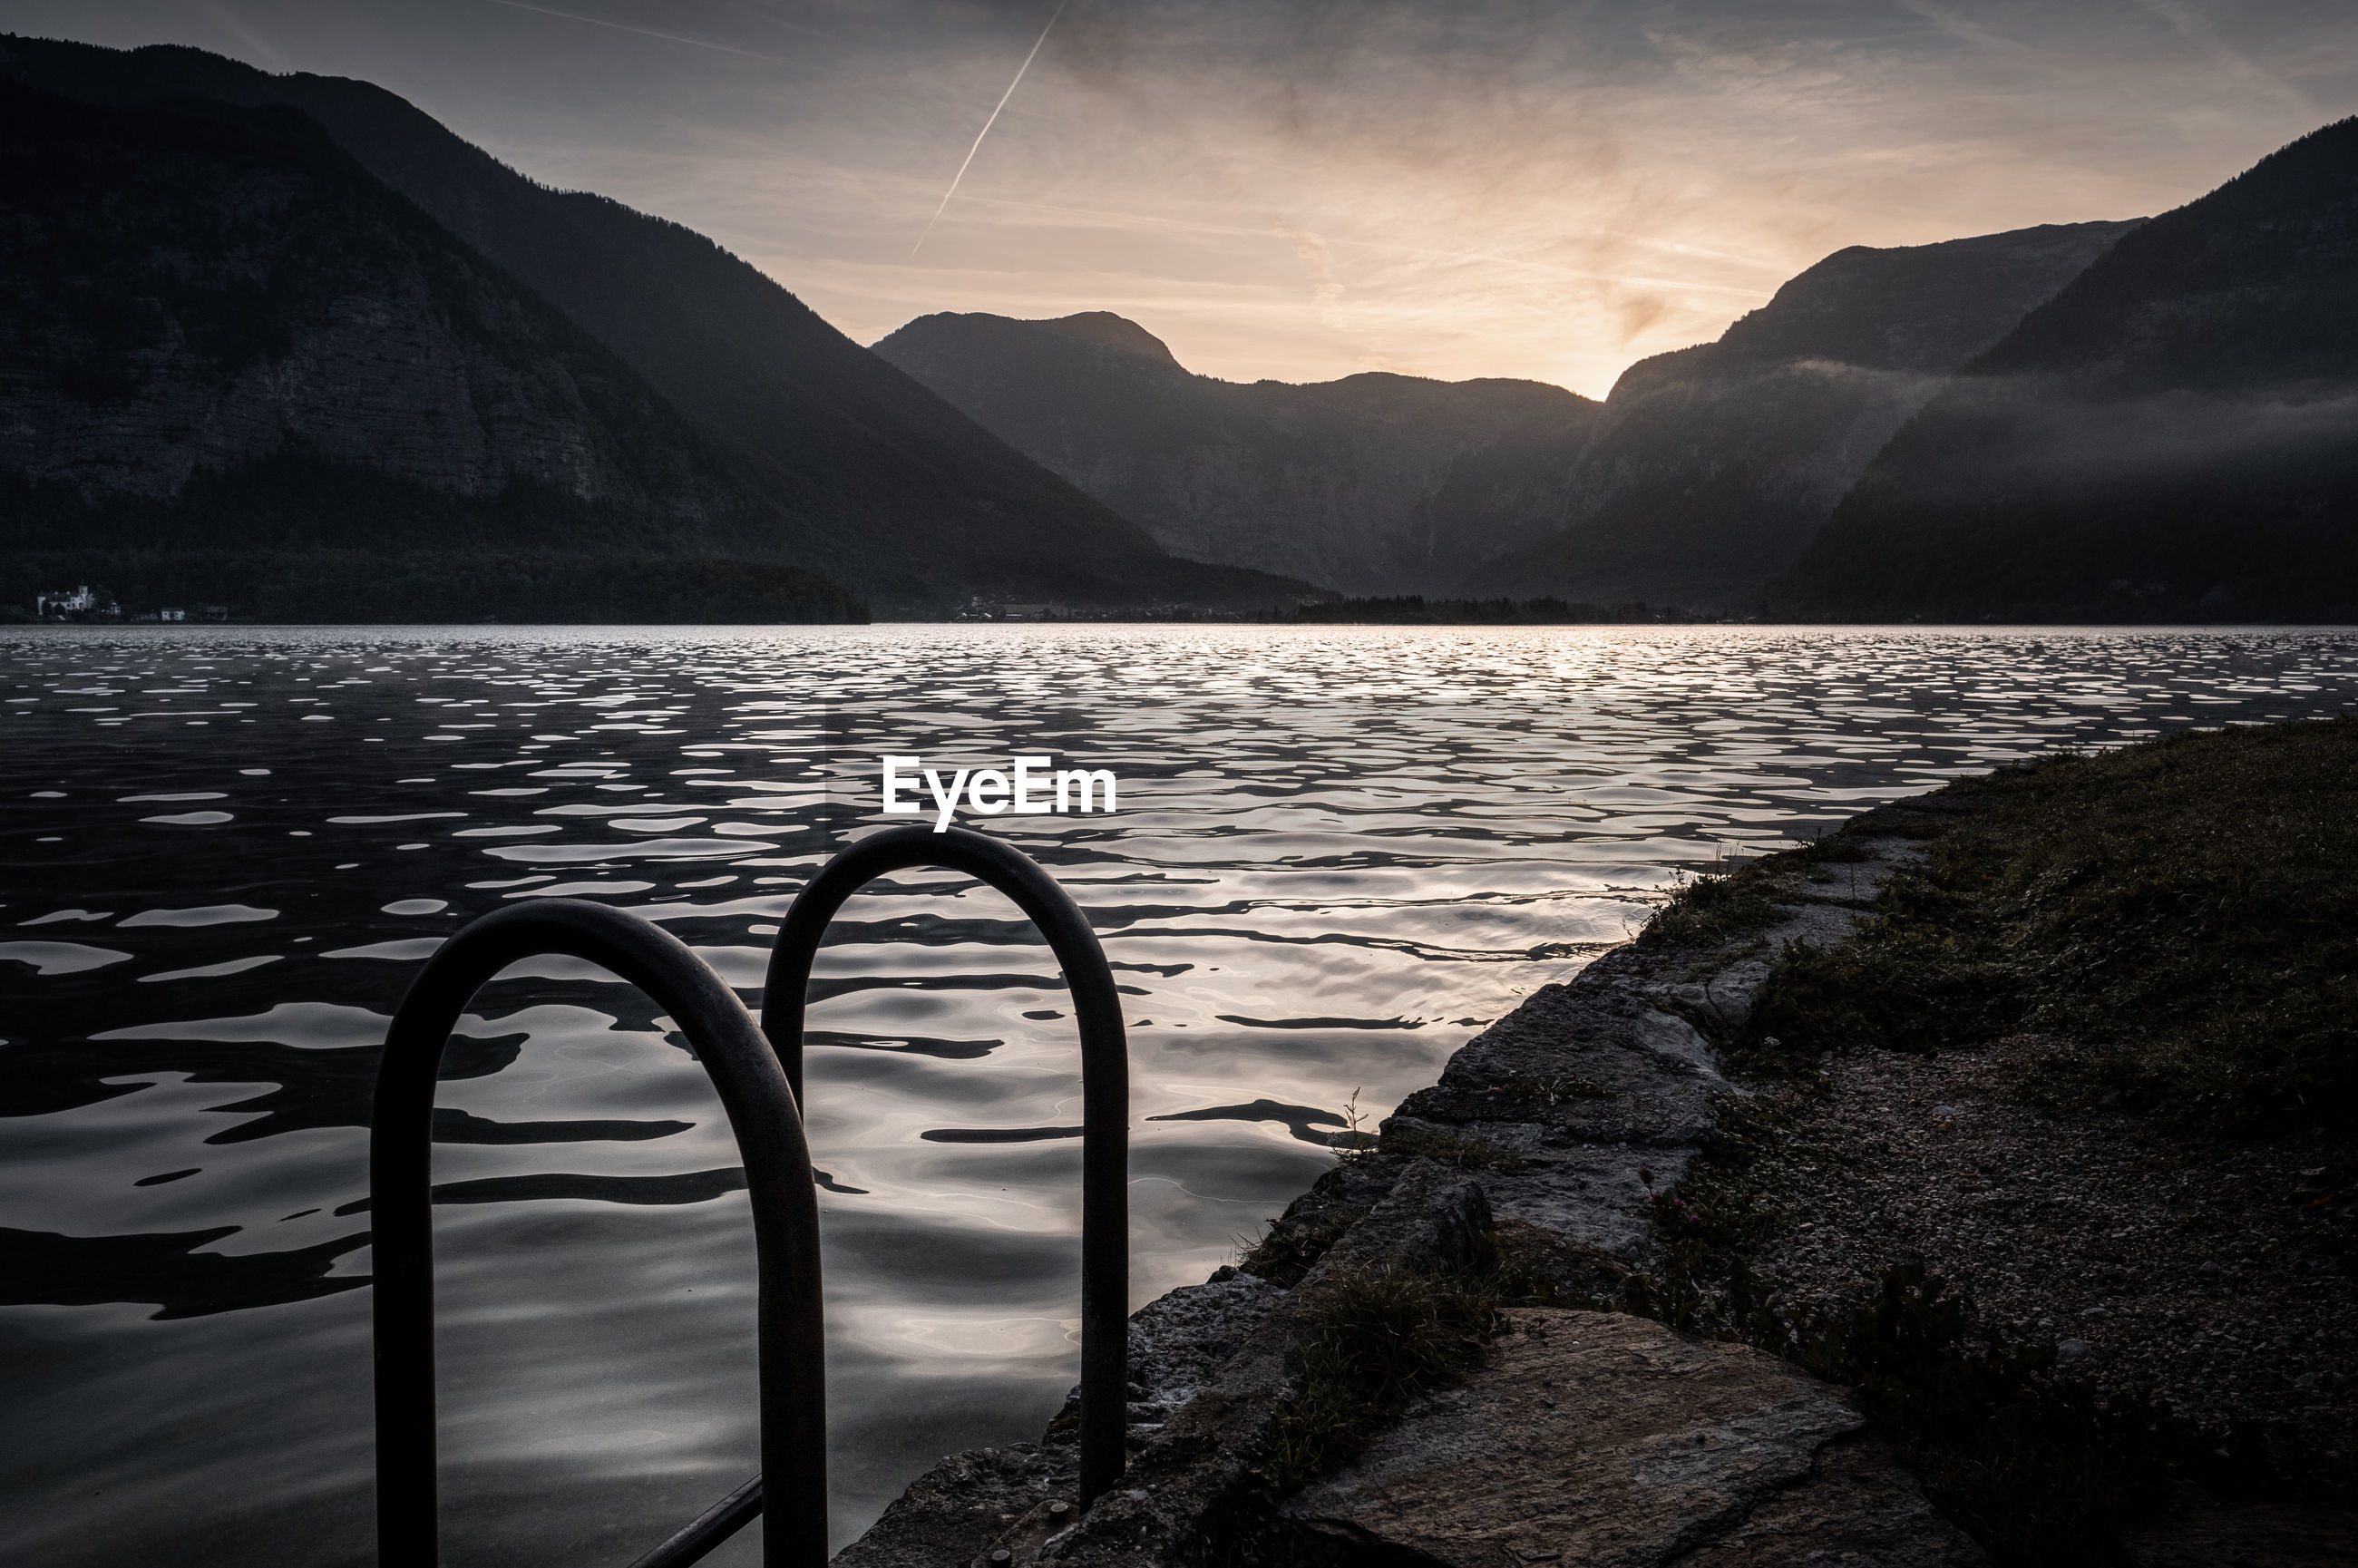 SCENIC VIEW OF LAKE AGAINST MOUNTAIN DURING SUNSET